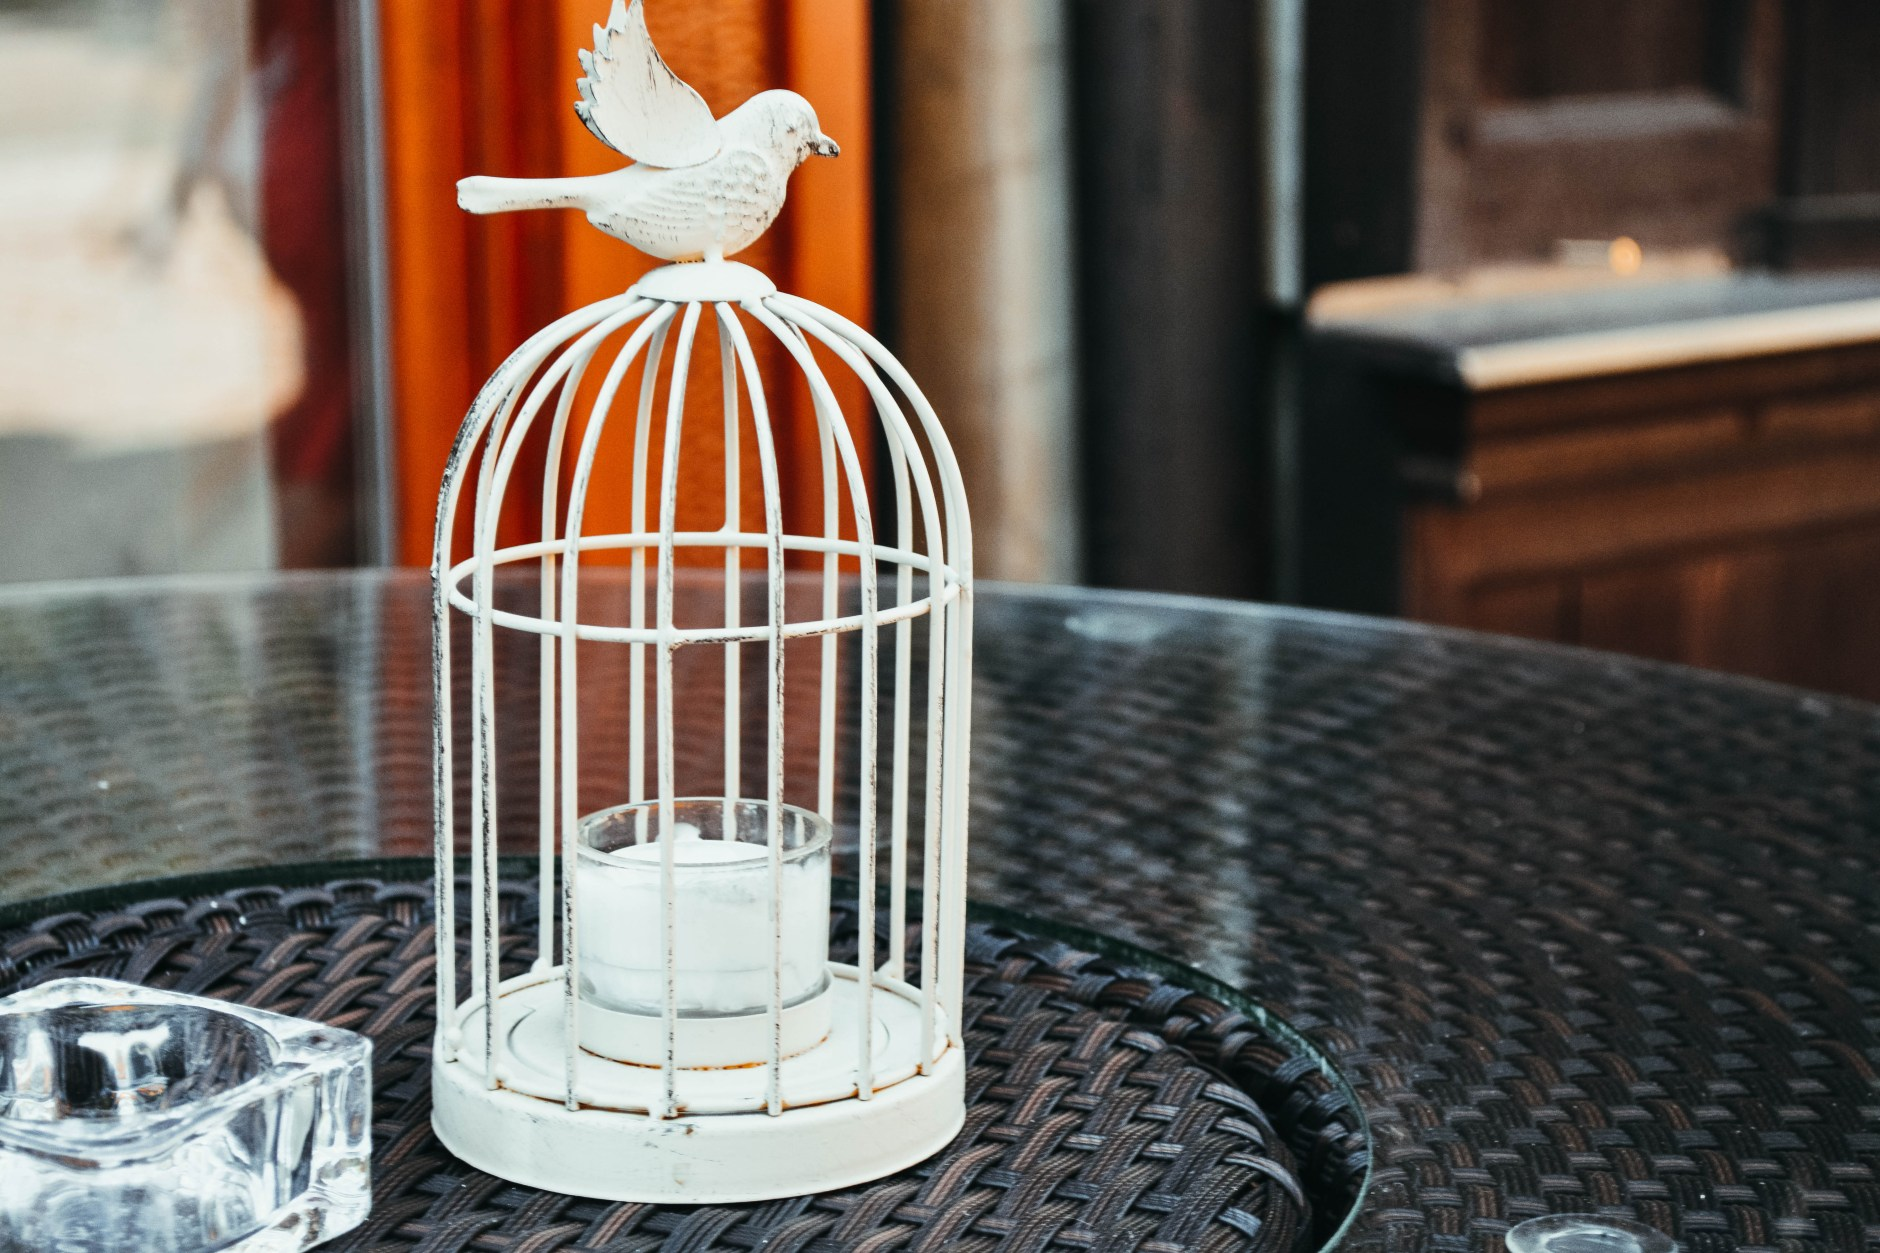 candle in a cage container placed on a table